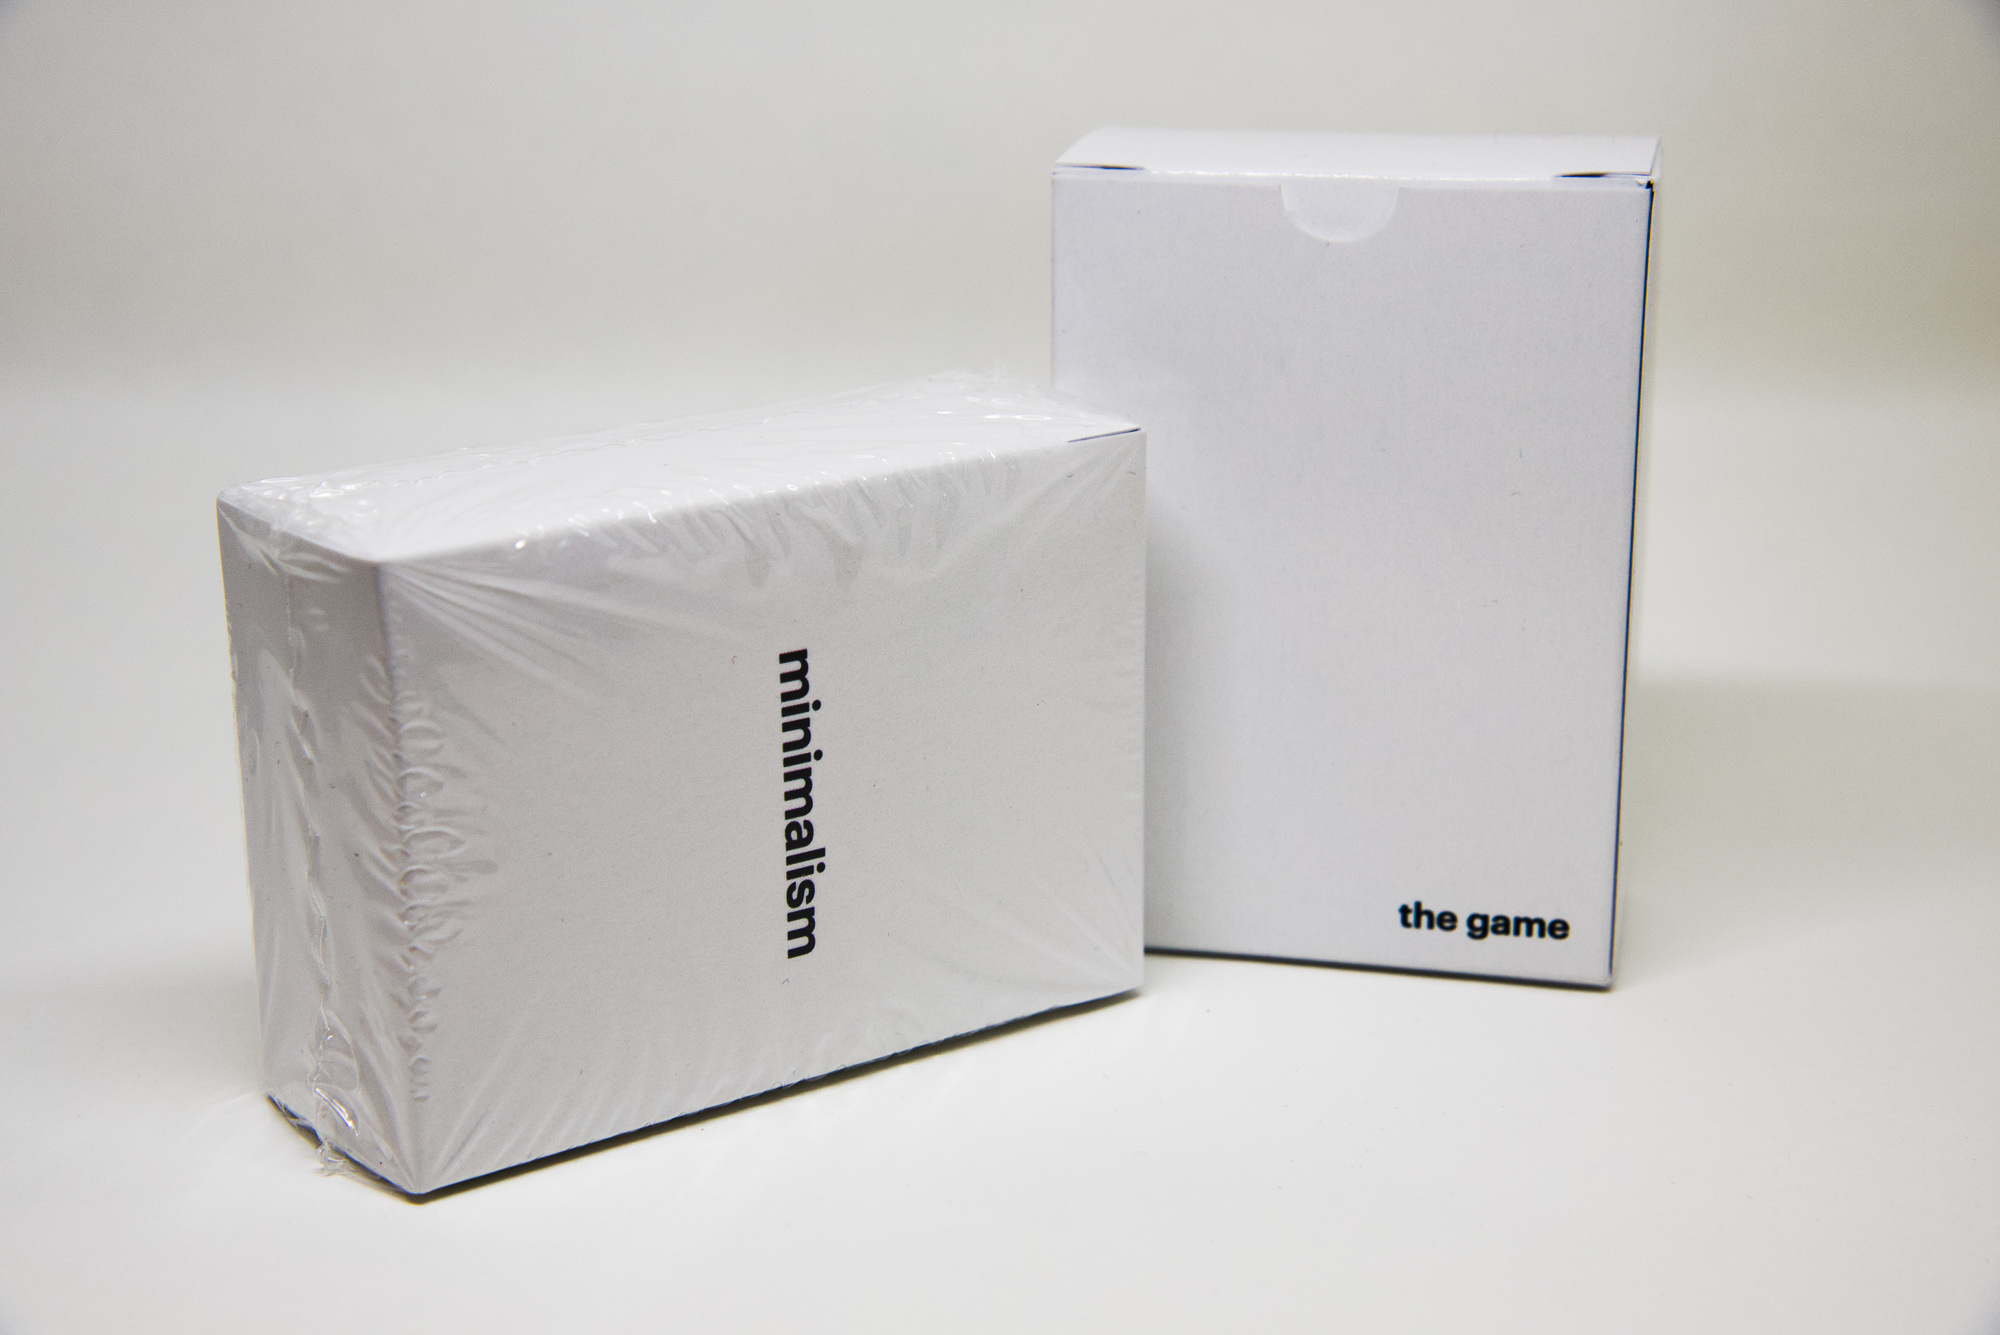 A front and back view of the box.